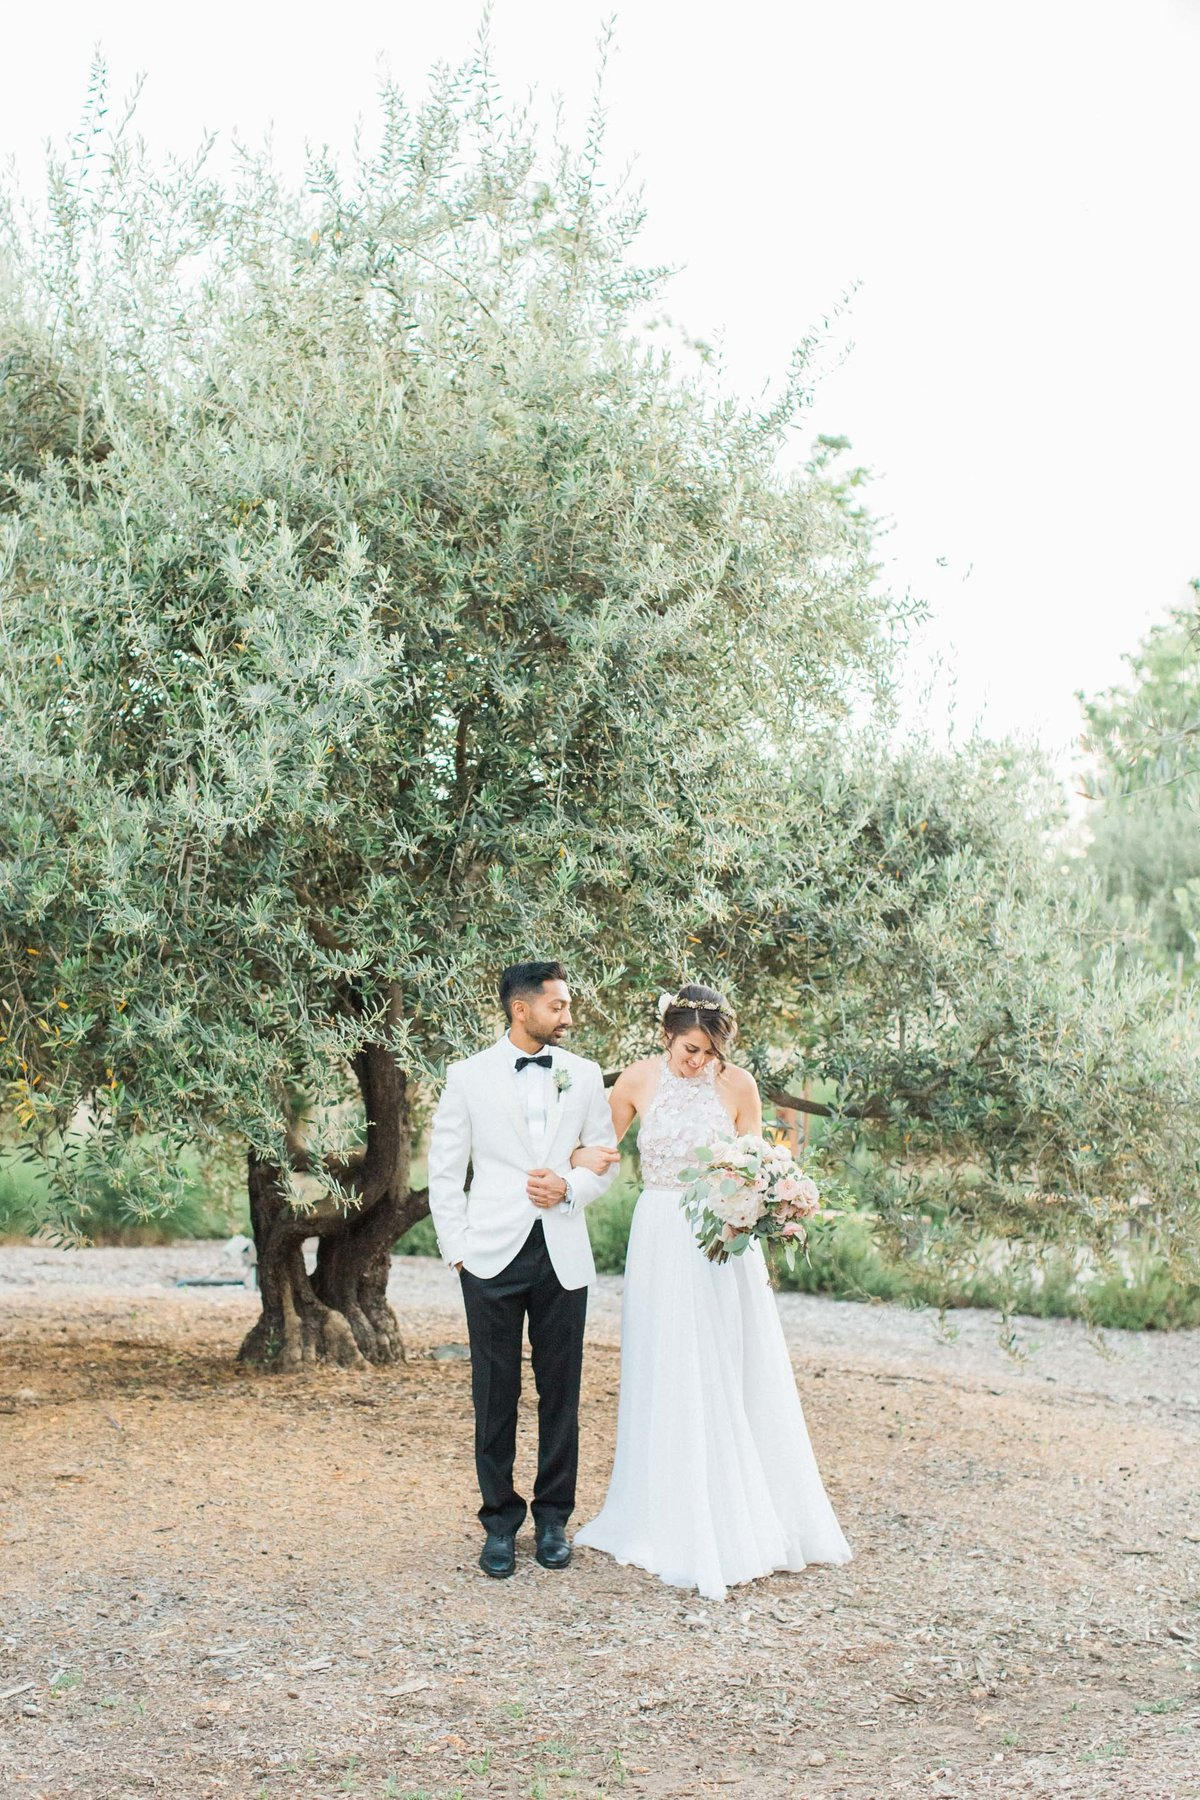 Solage-Sonoma-Napa-Wedding-Photographer-44-DT